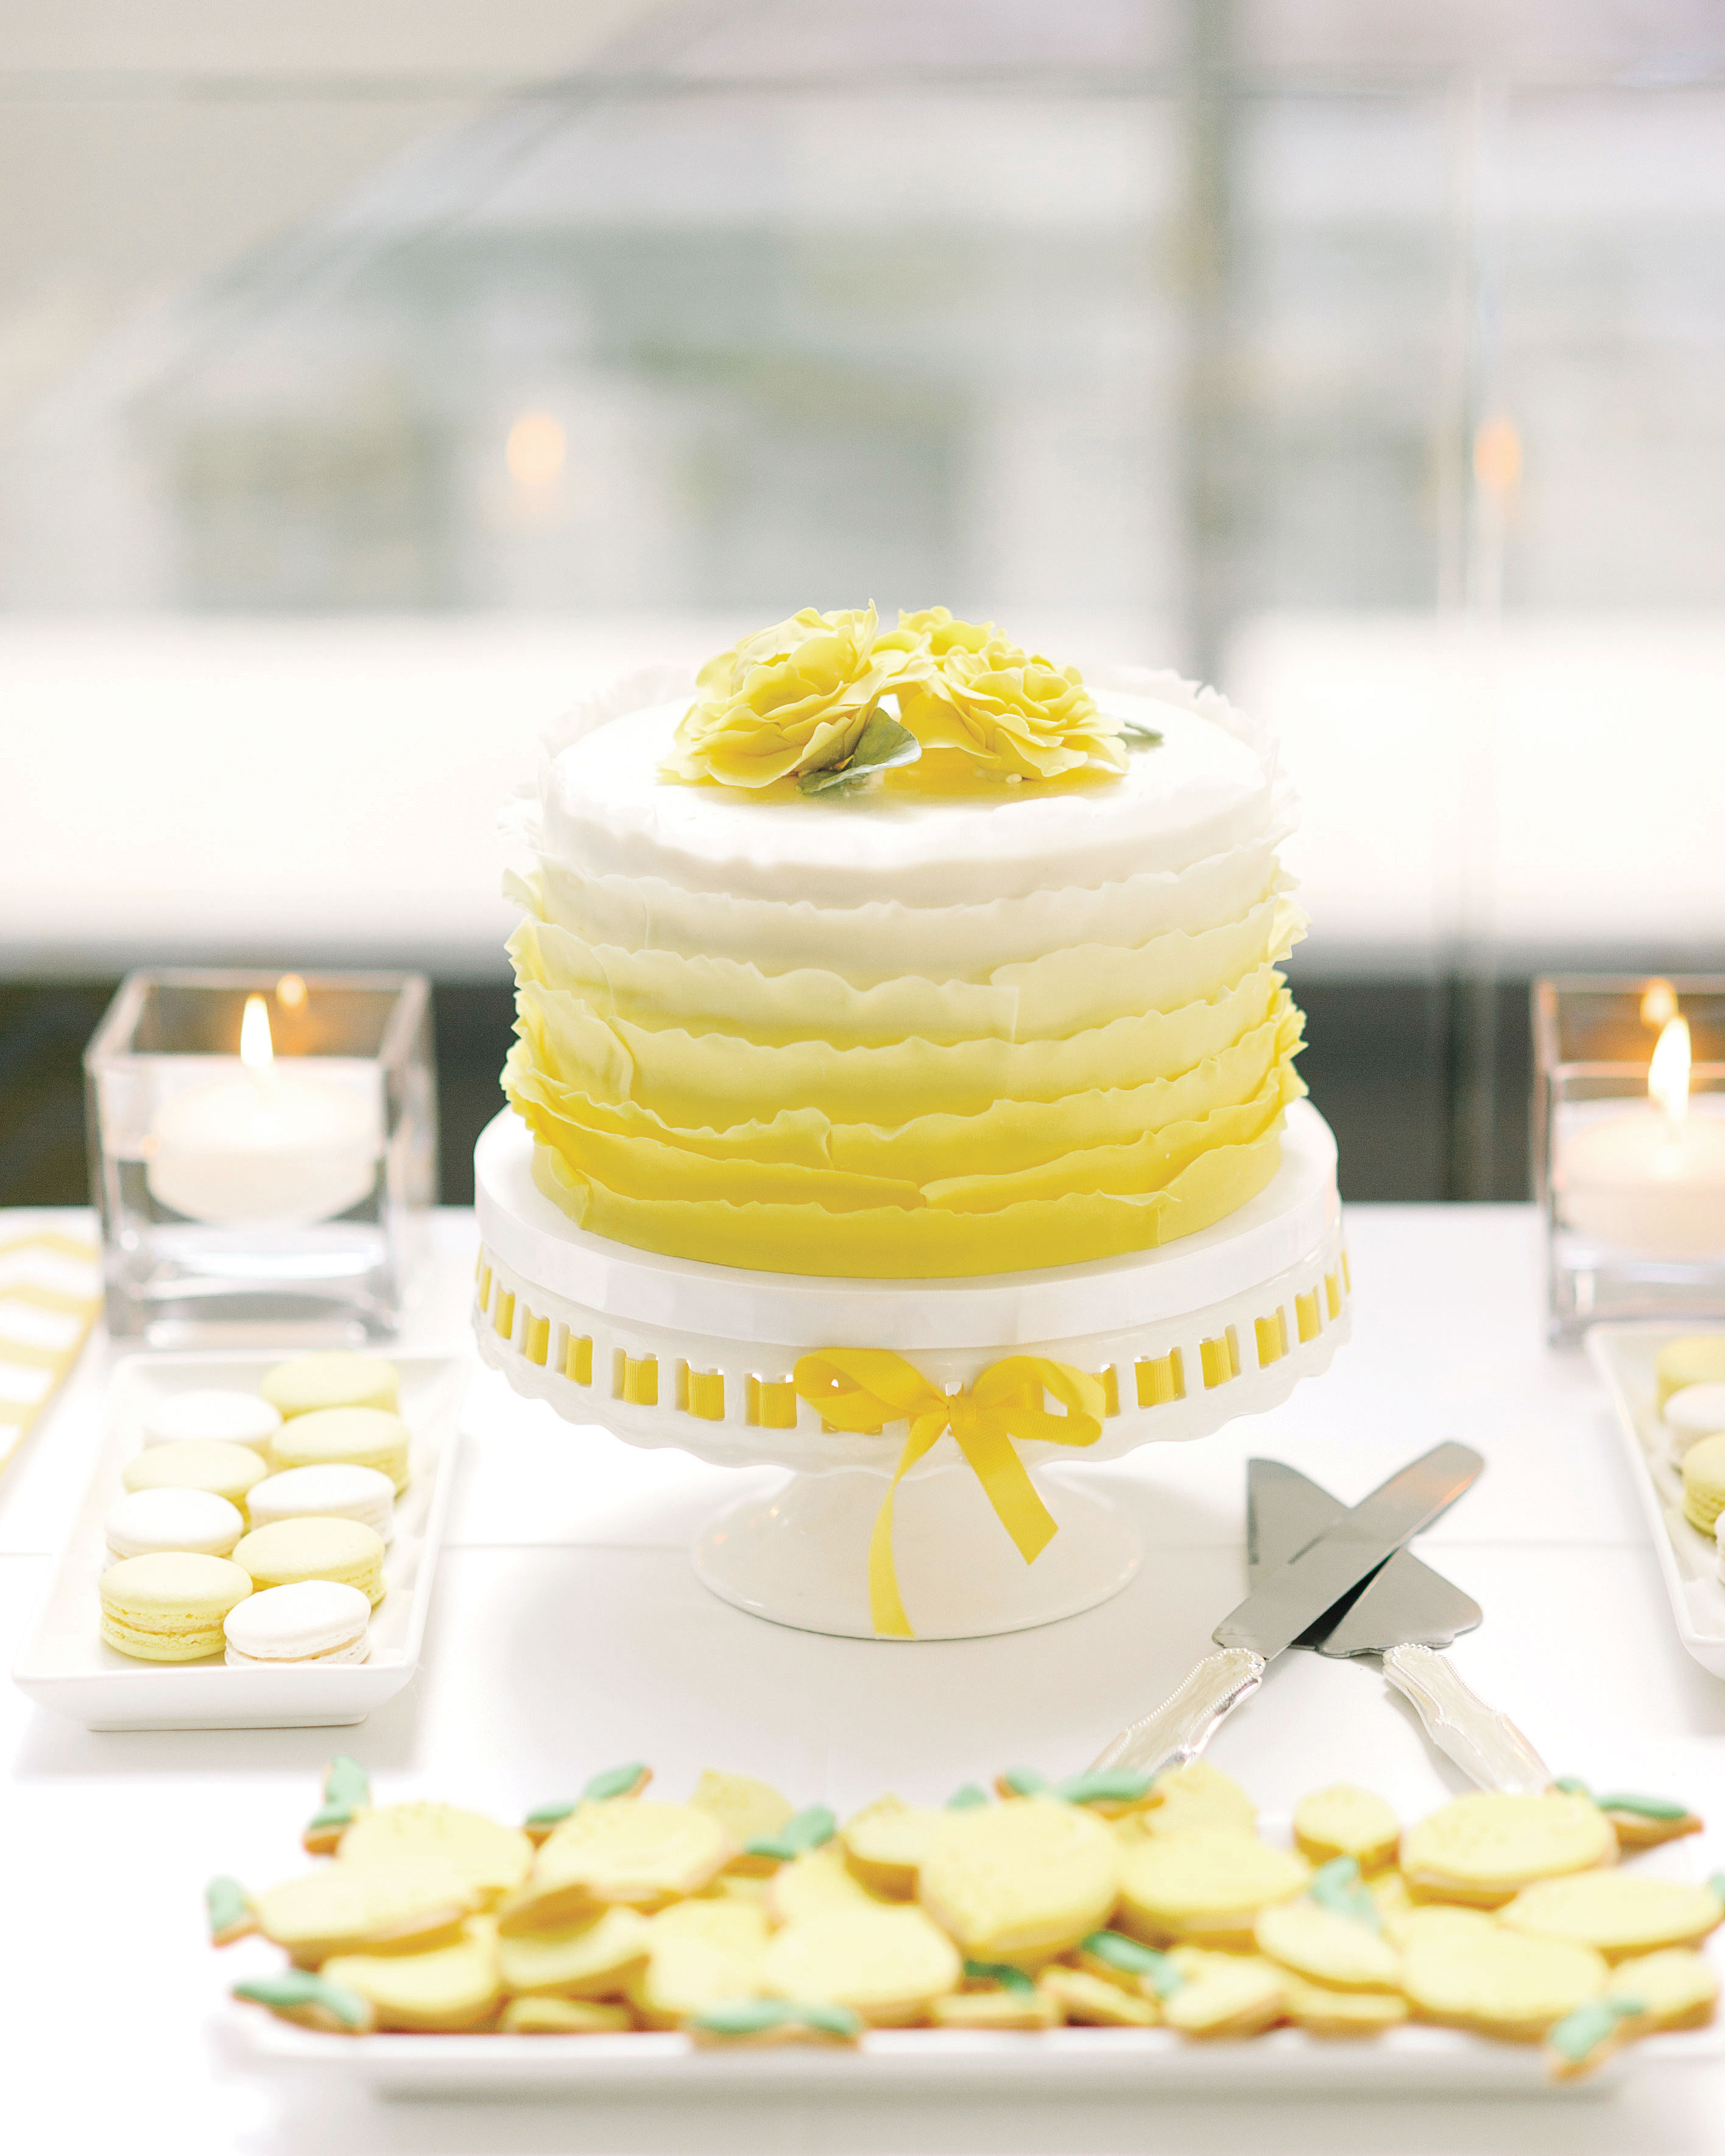 mamy-dan-wedding-canada-details-yellow-cake-floral-009-s112629.jpg